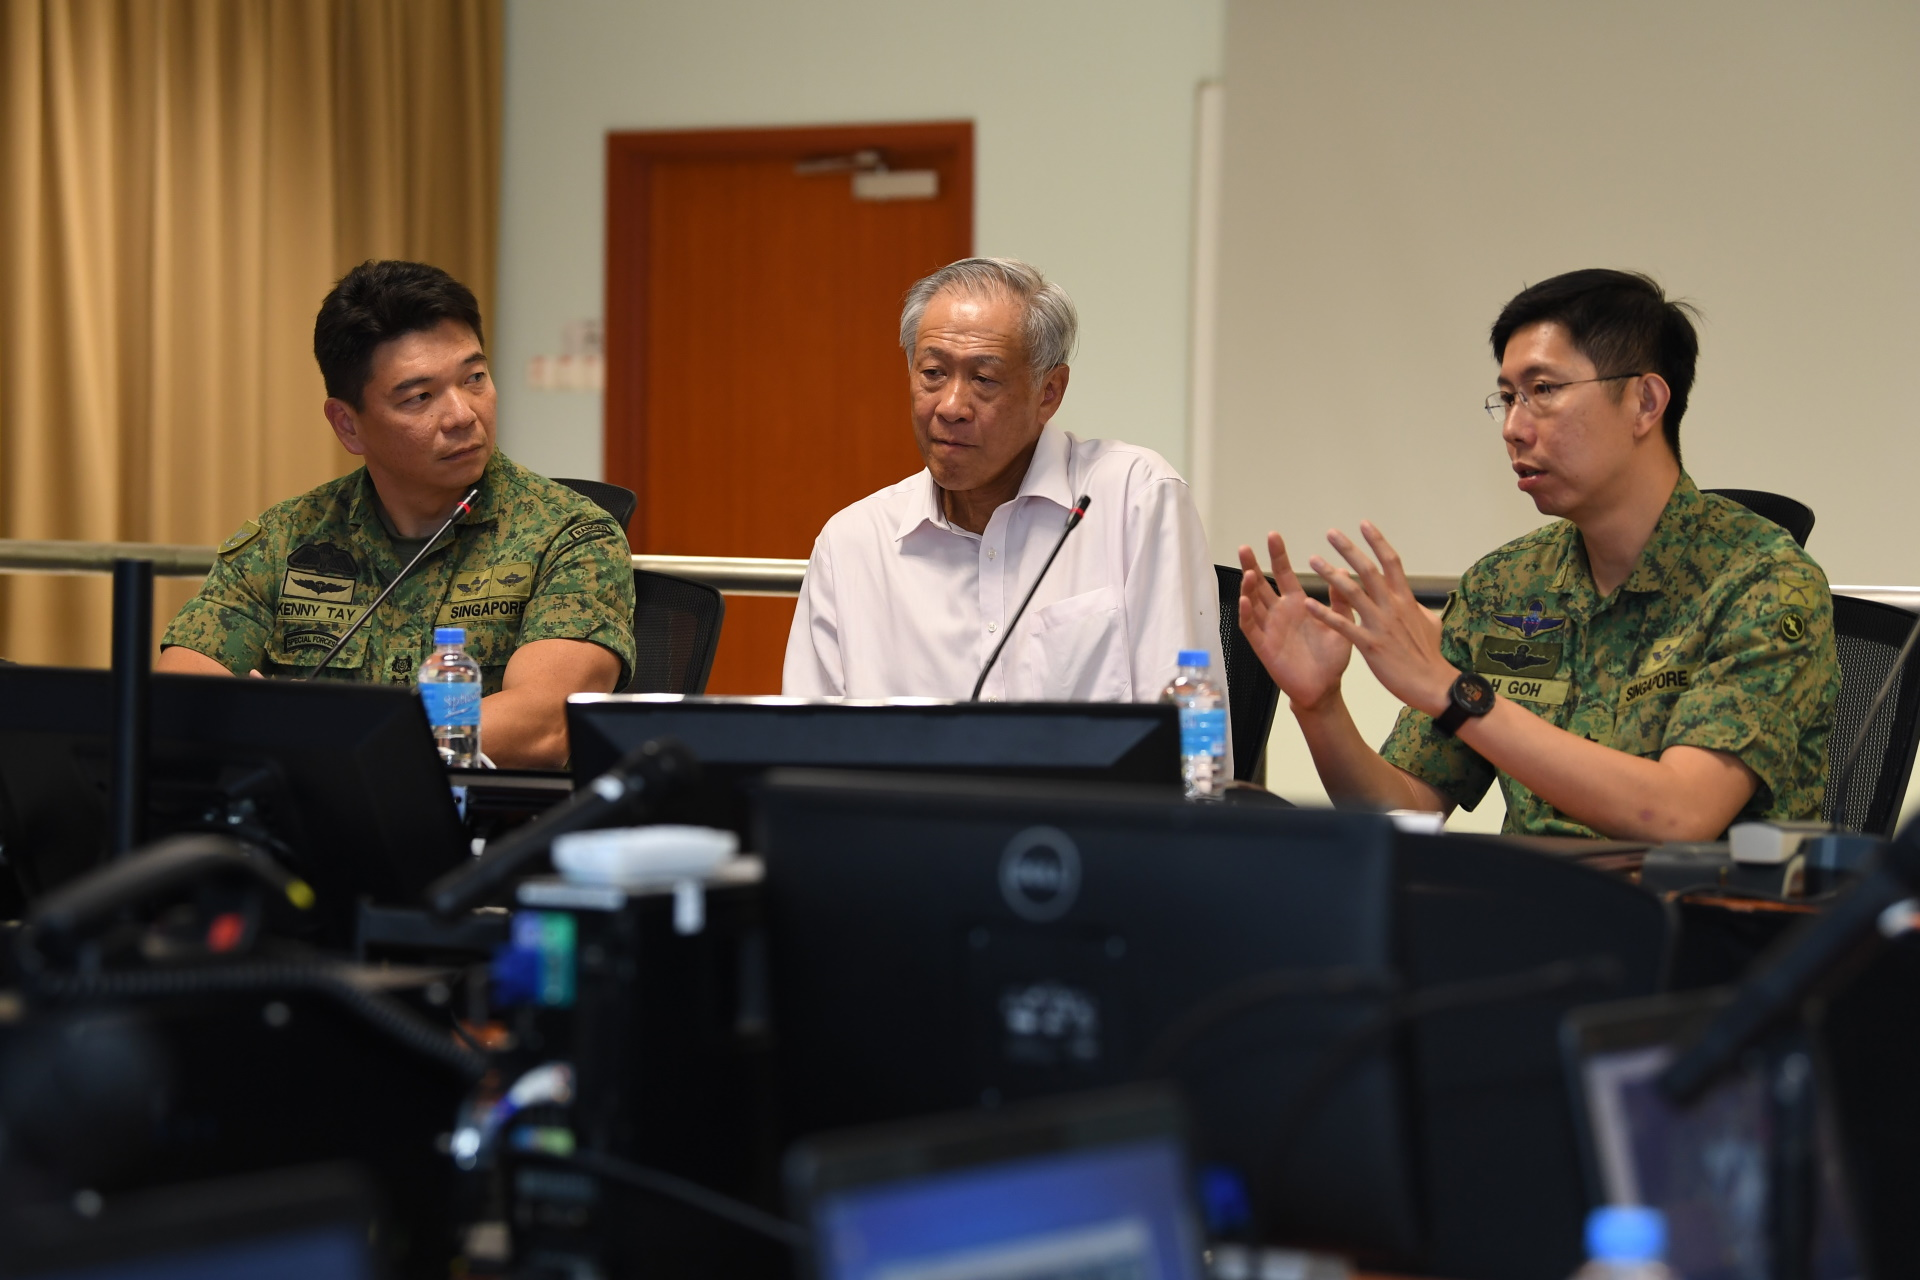 Dr Ng (middle) receiving a brief in the SOCC.